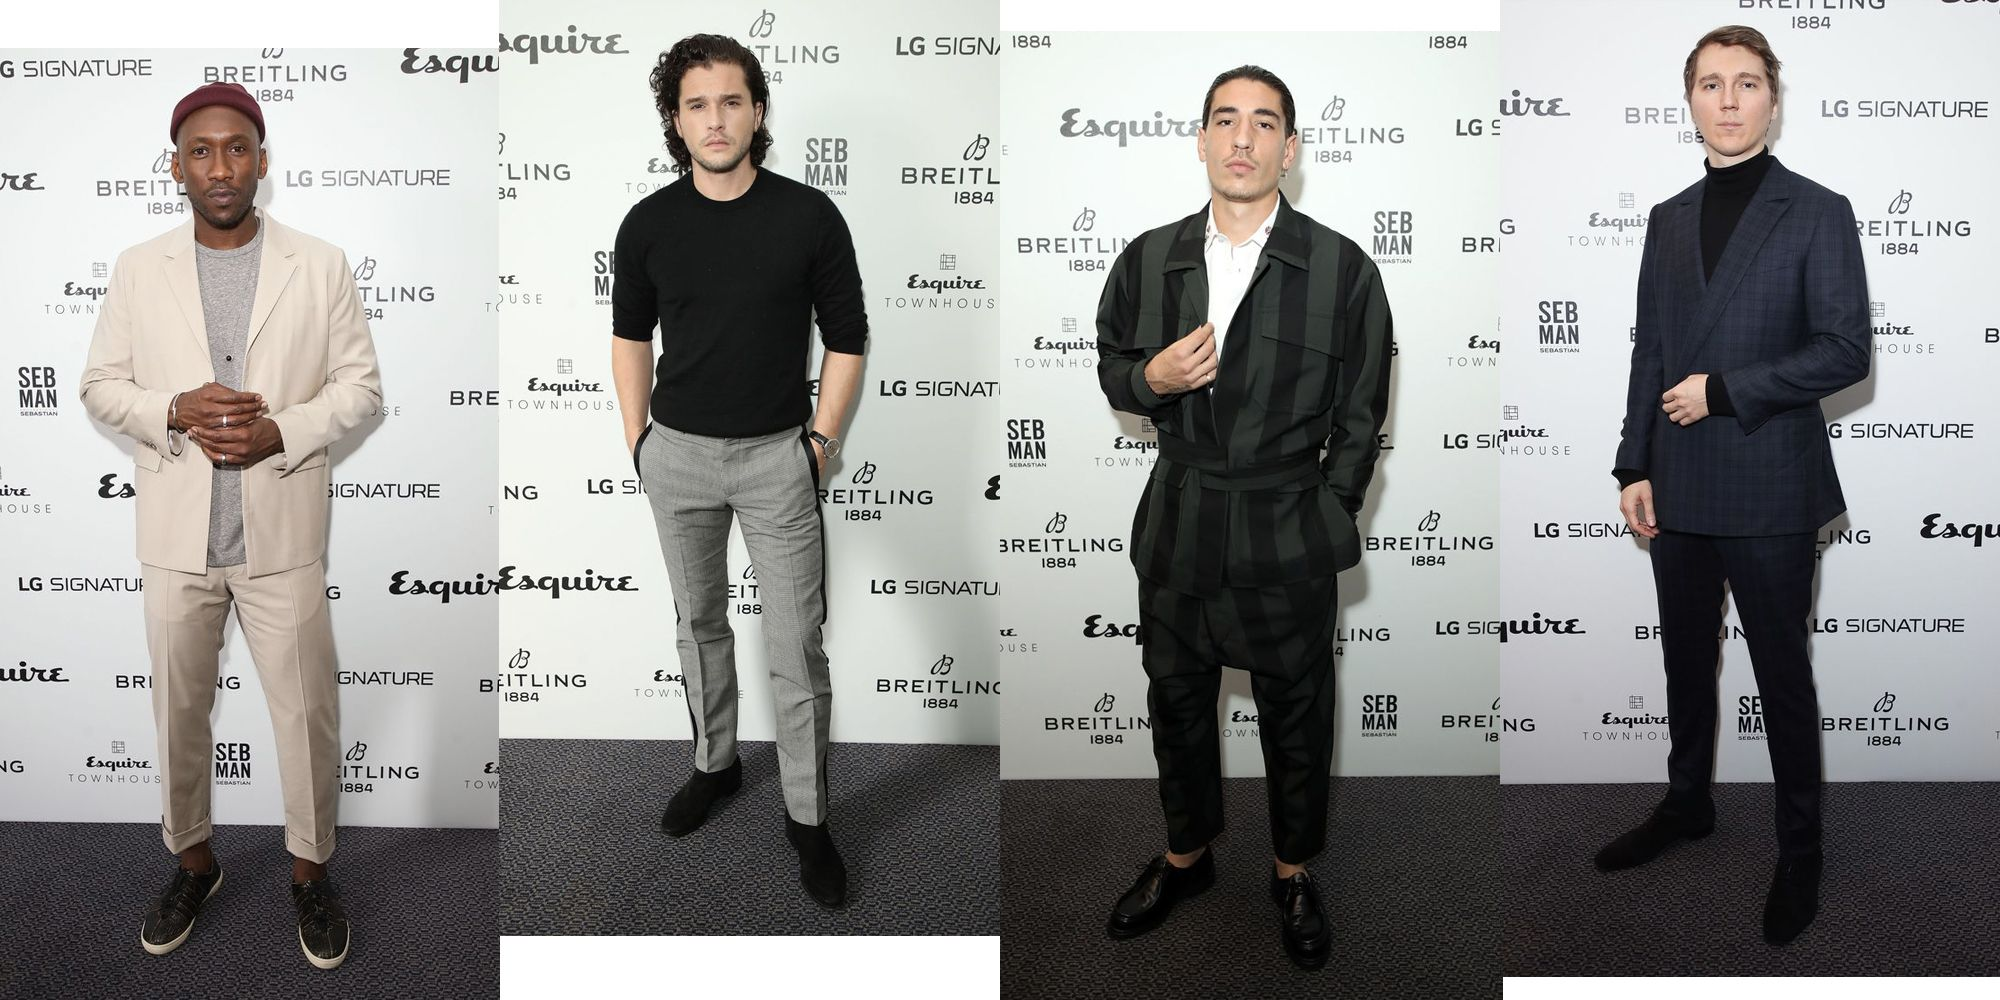 esquire townhouse best dressed